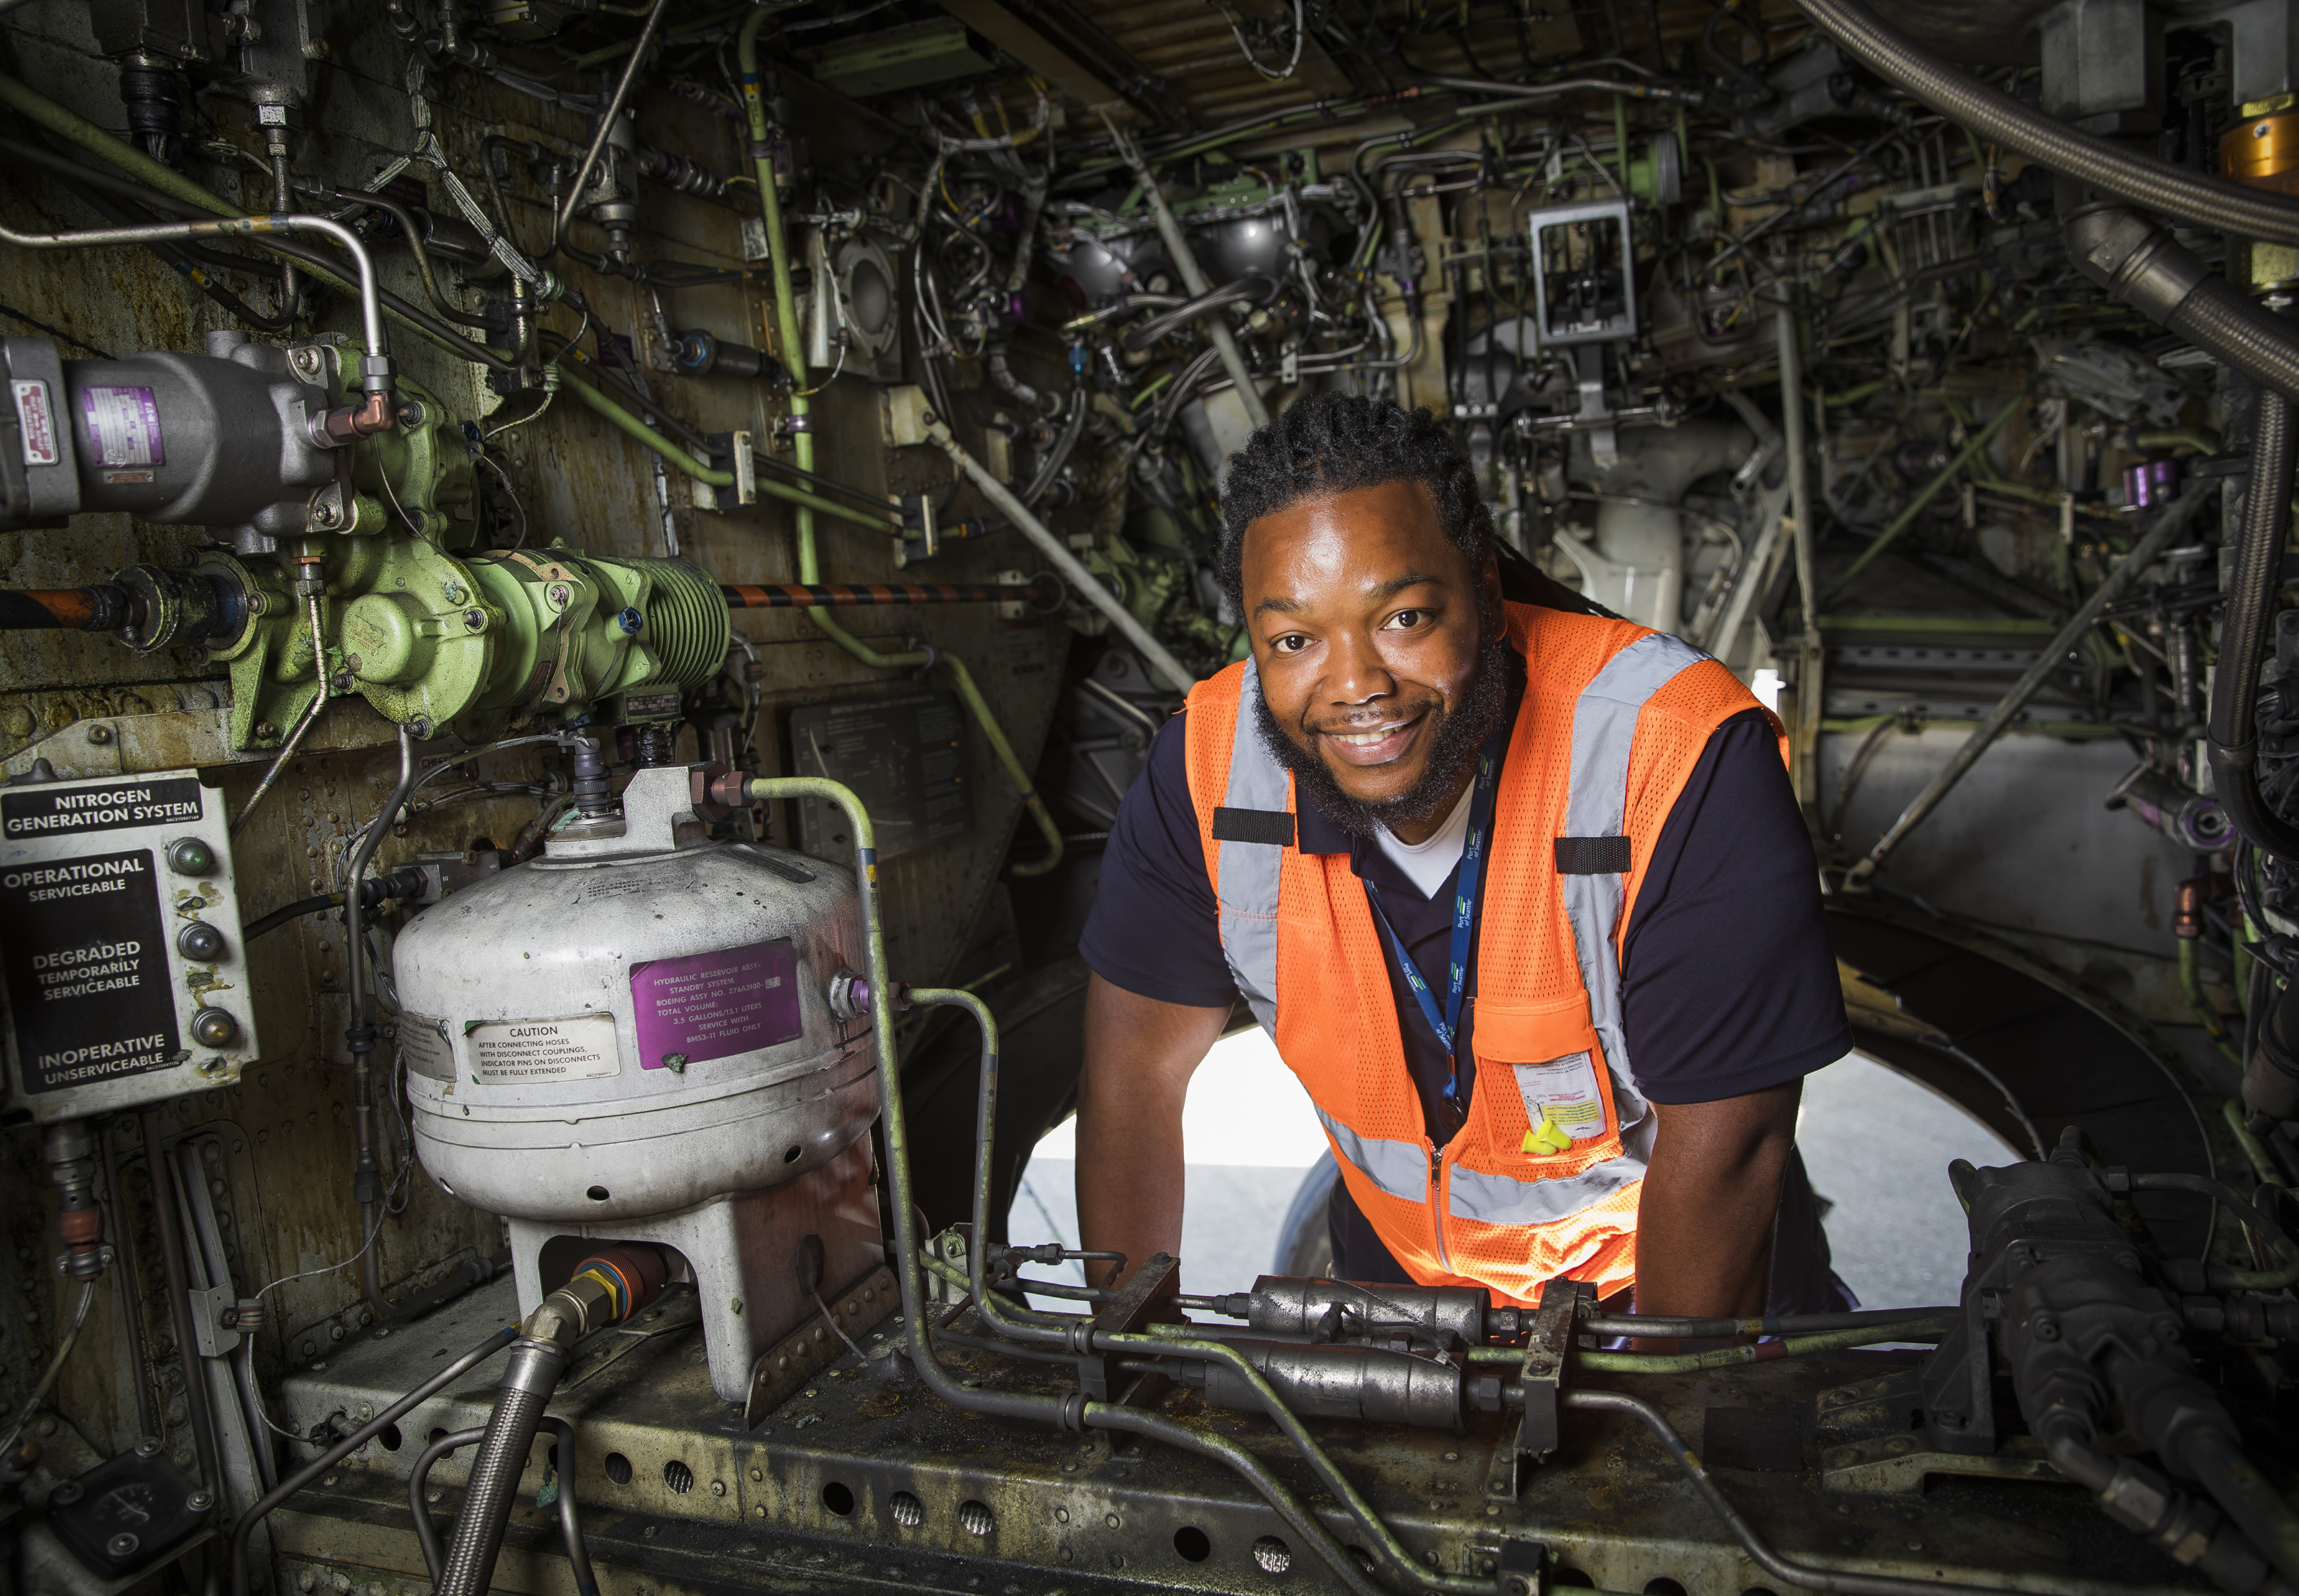 Smiling man surrounded by machinery